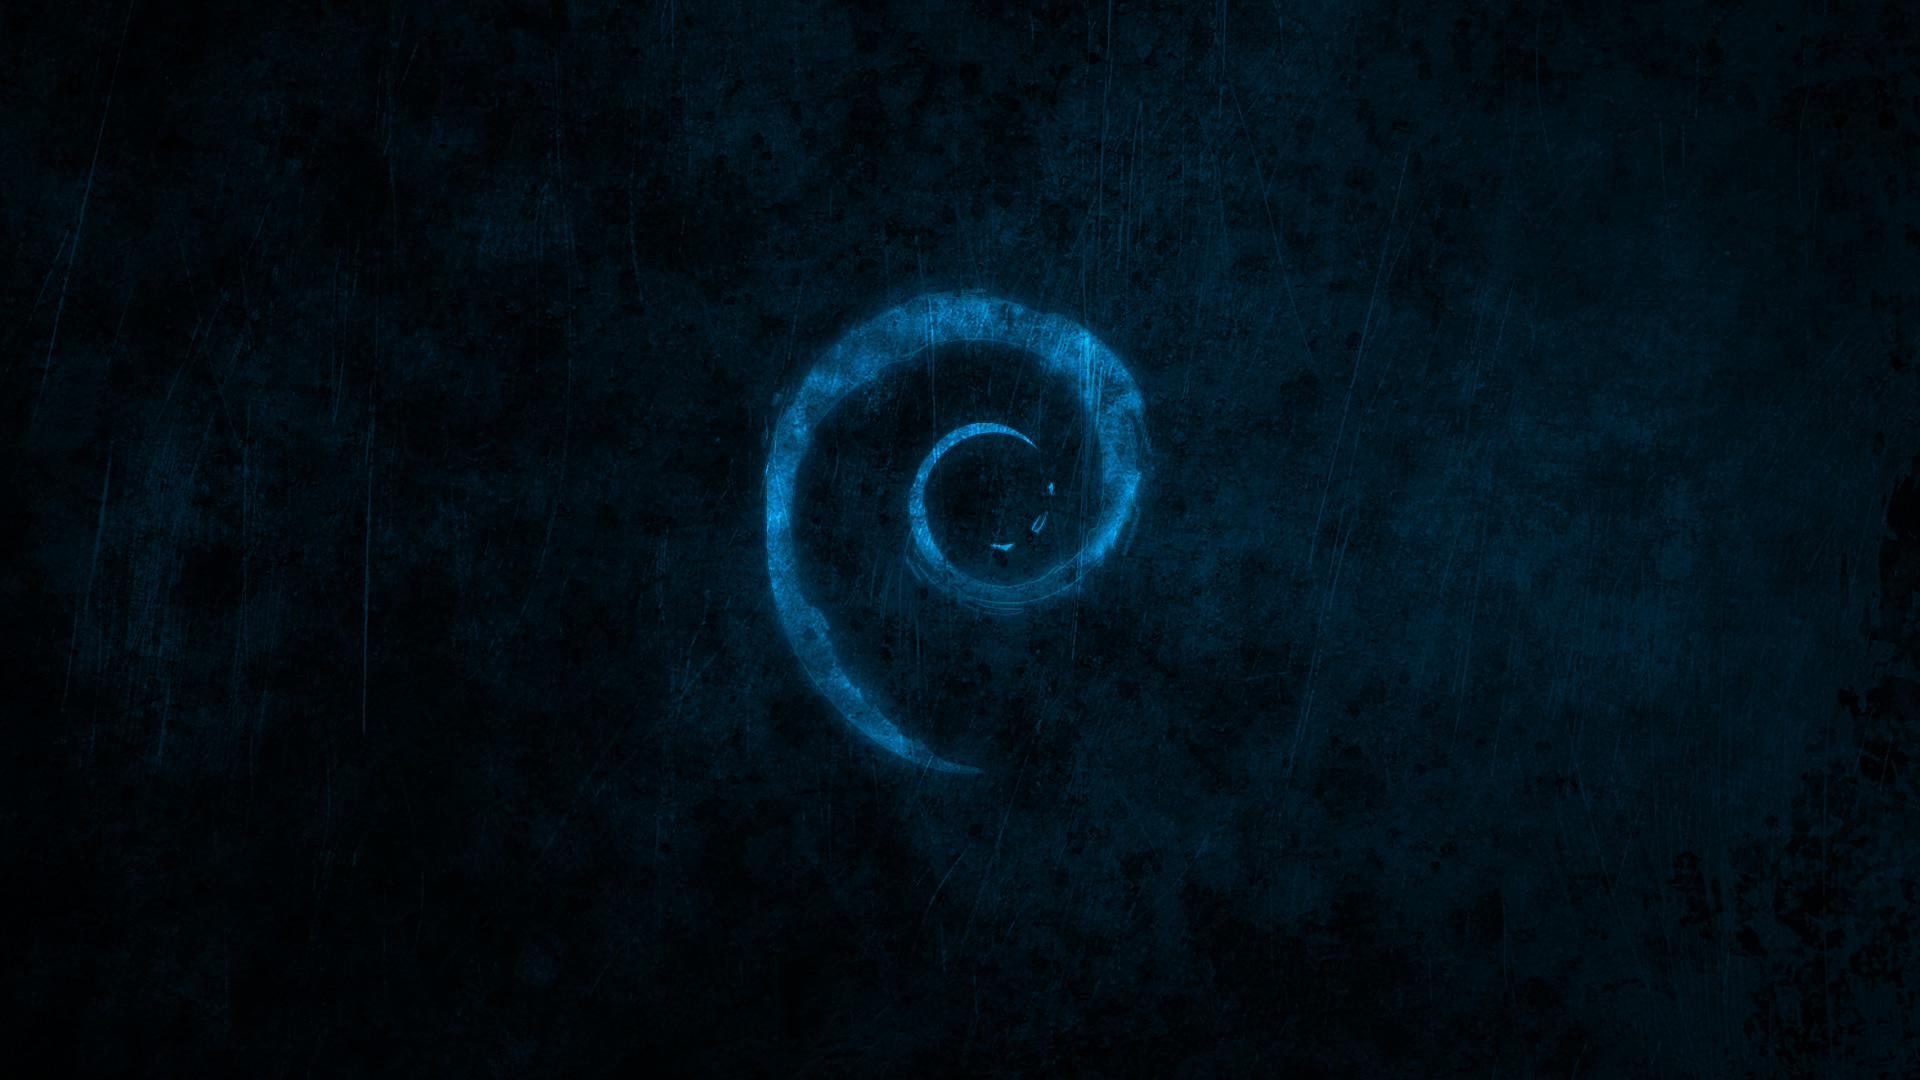 debian dark wallpapers hd 1080malkowitch on deviantart